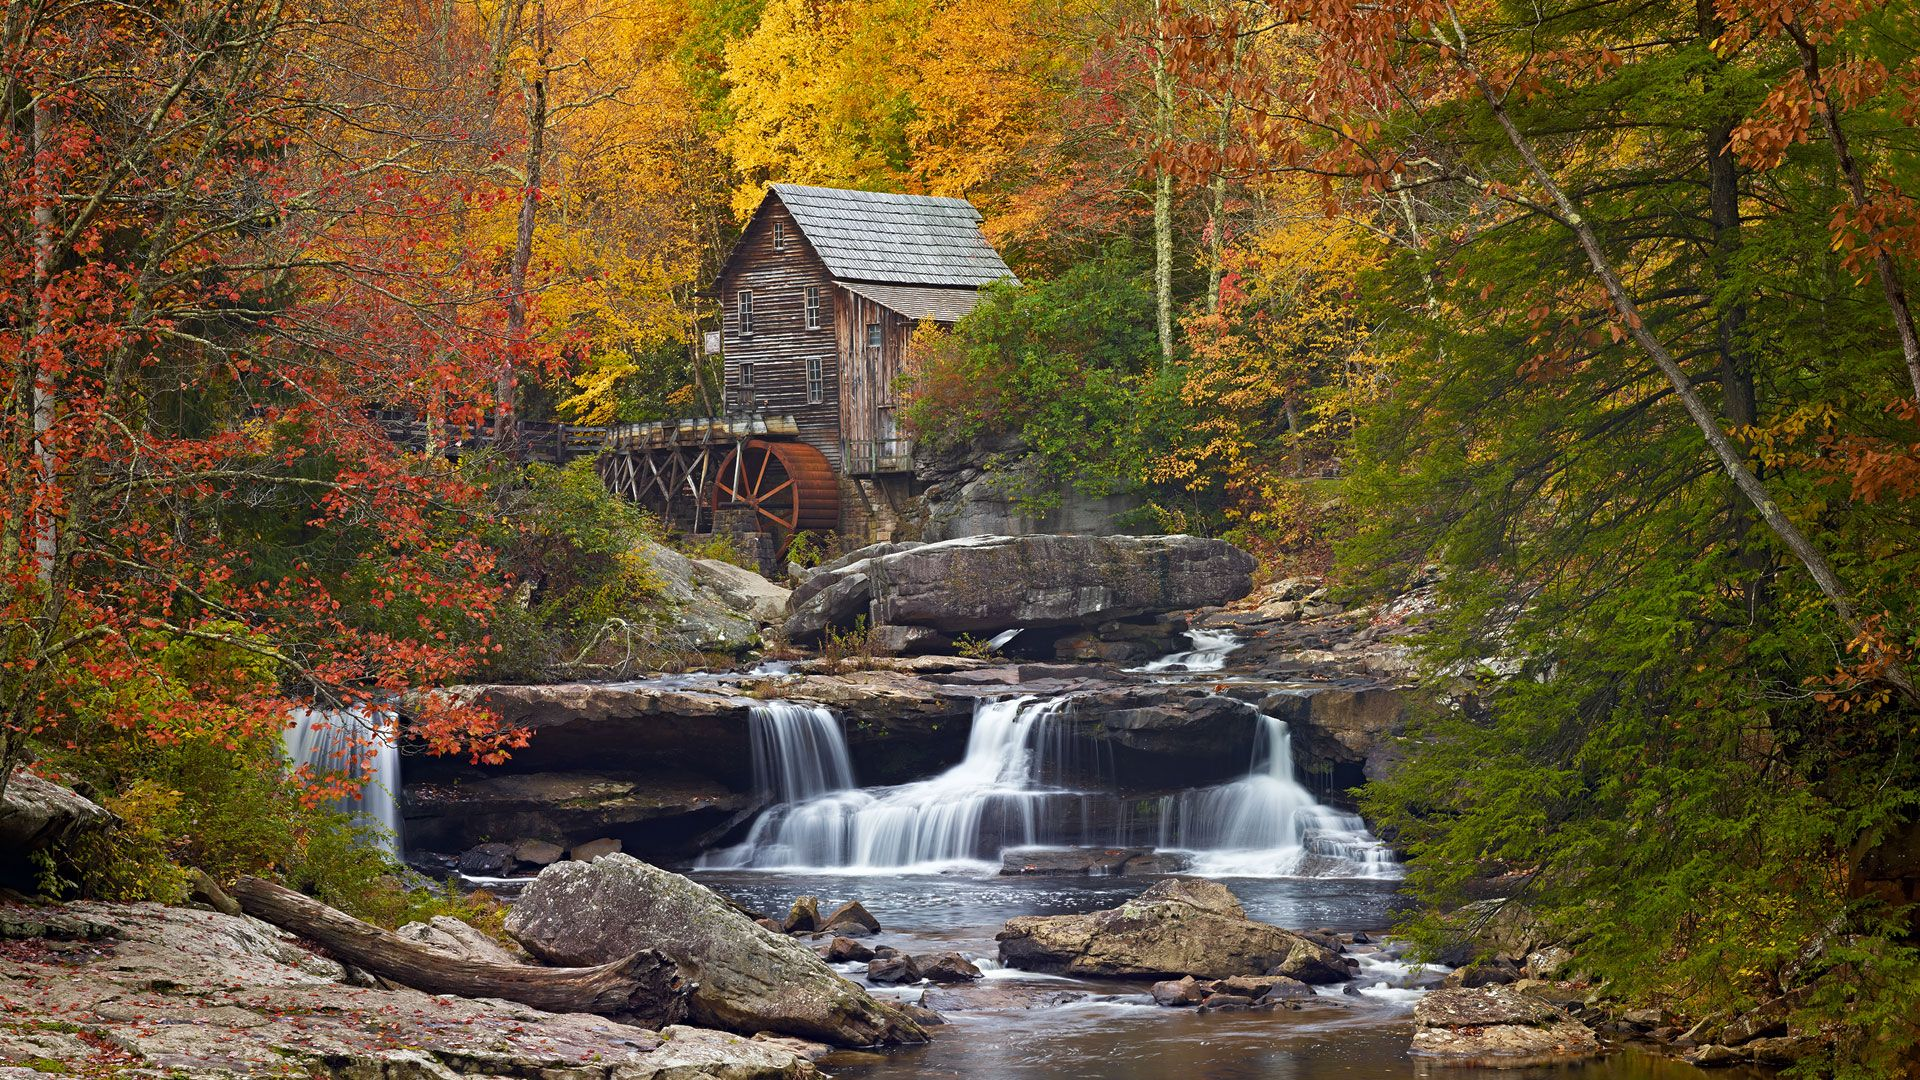 rural in hd | HD Wallpaper: West Virginia Autumn | Ed Cooley Fine Art Photography | iPhone ...